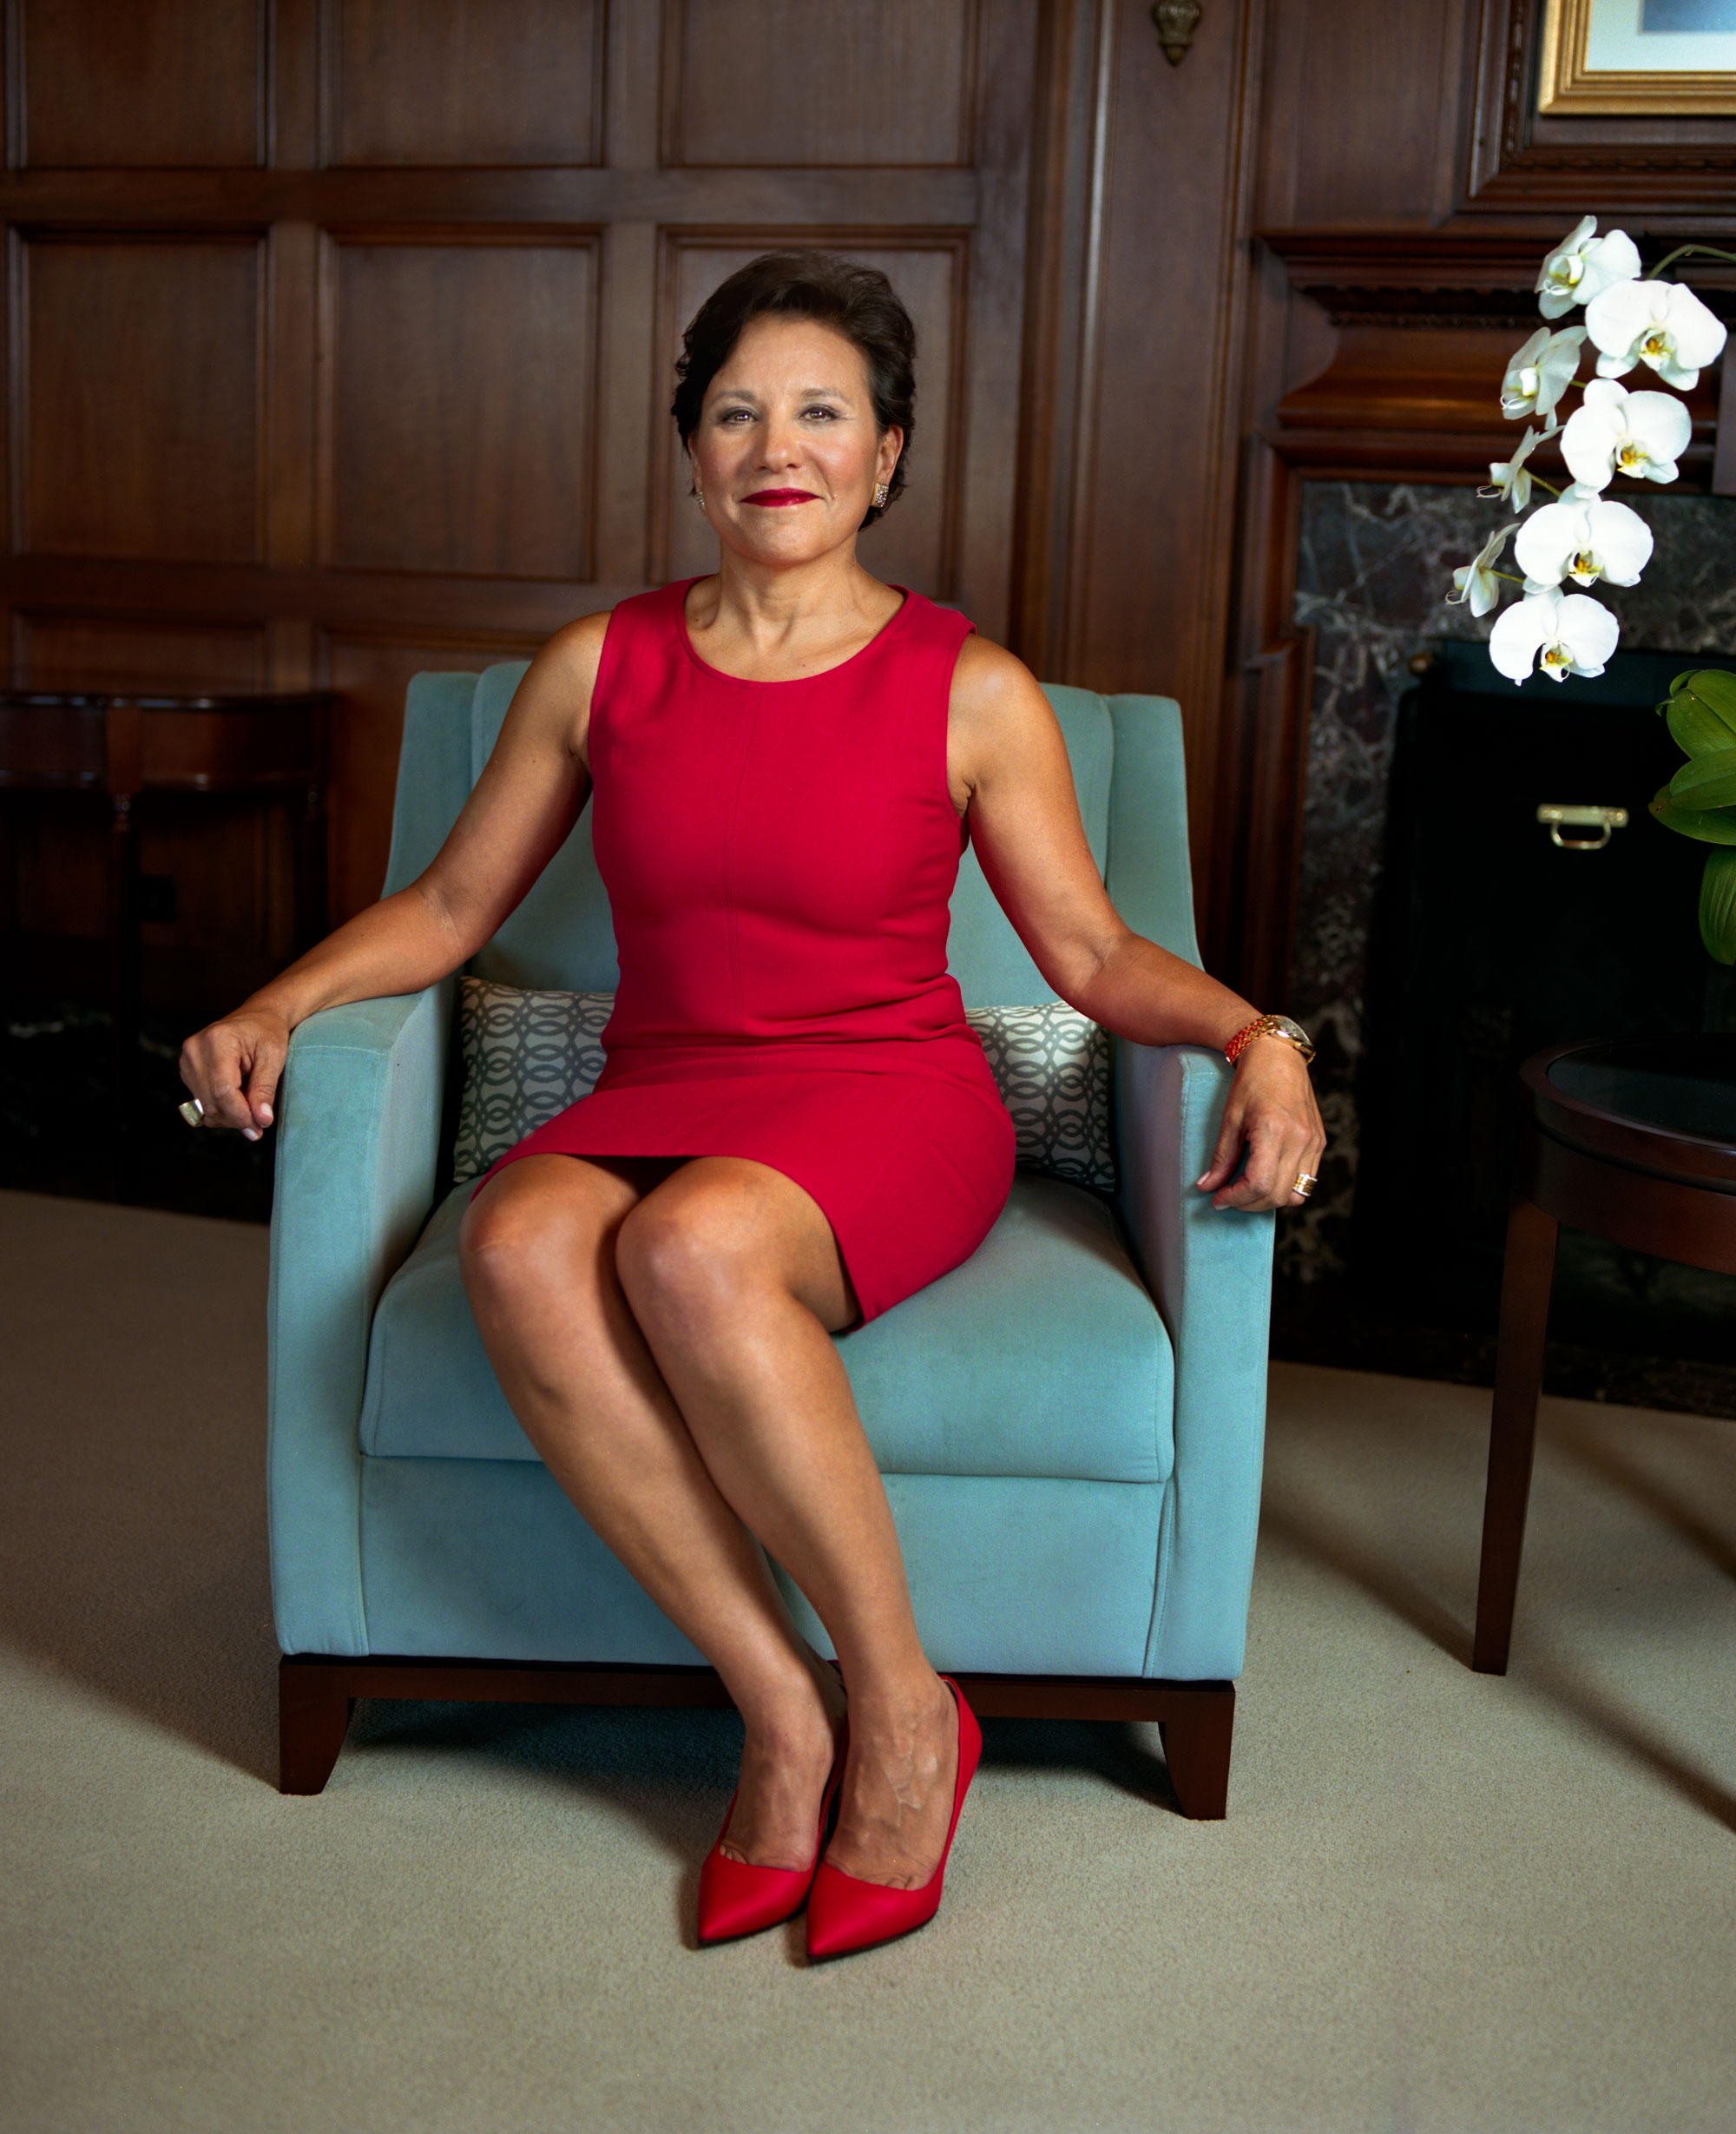 U.S. Secretary of Commerce Penny Pritzker in her office at the Department of Commerce in May 2014.